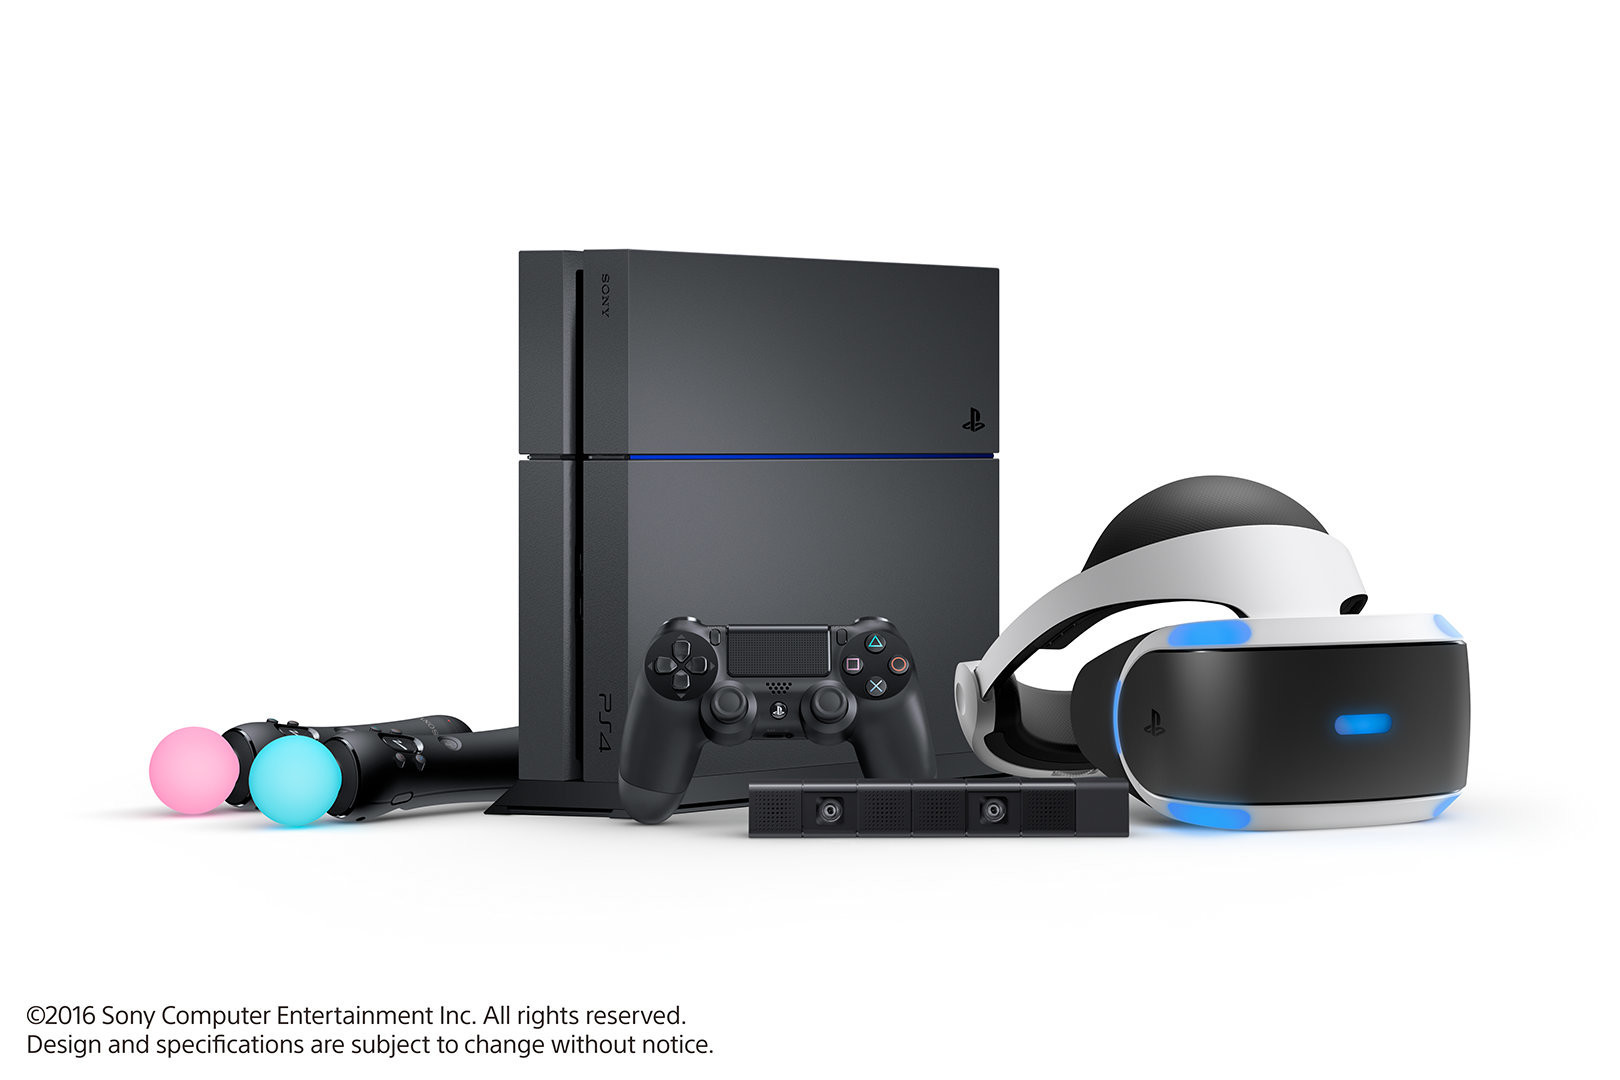 psvr-15mar16-us-gallery_g_01